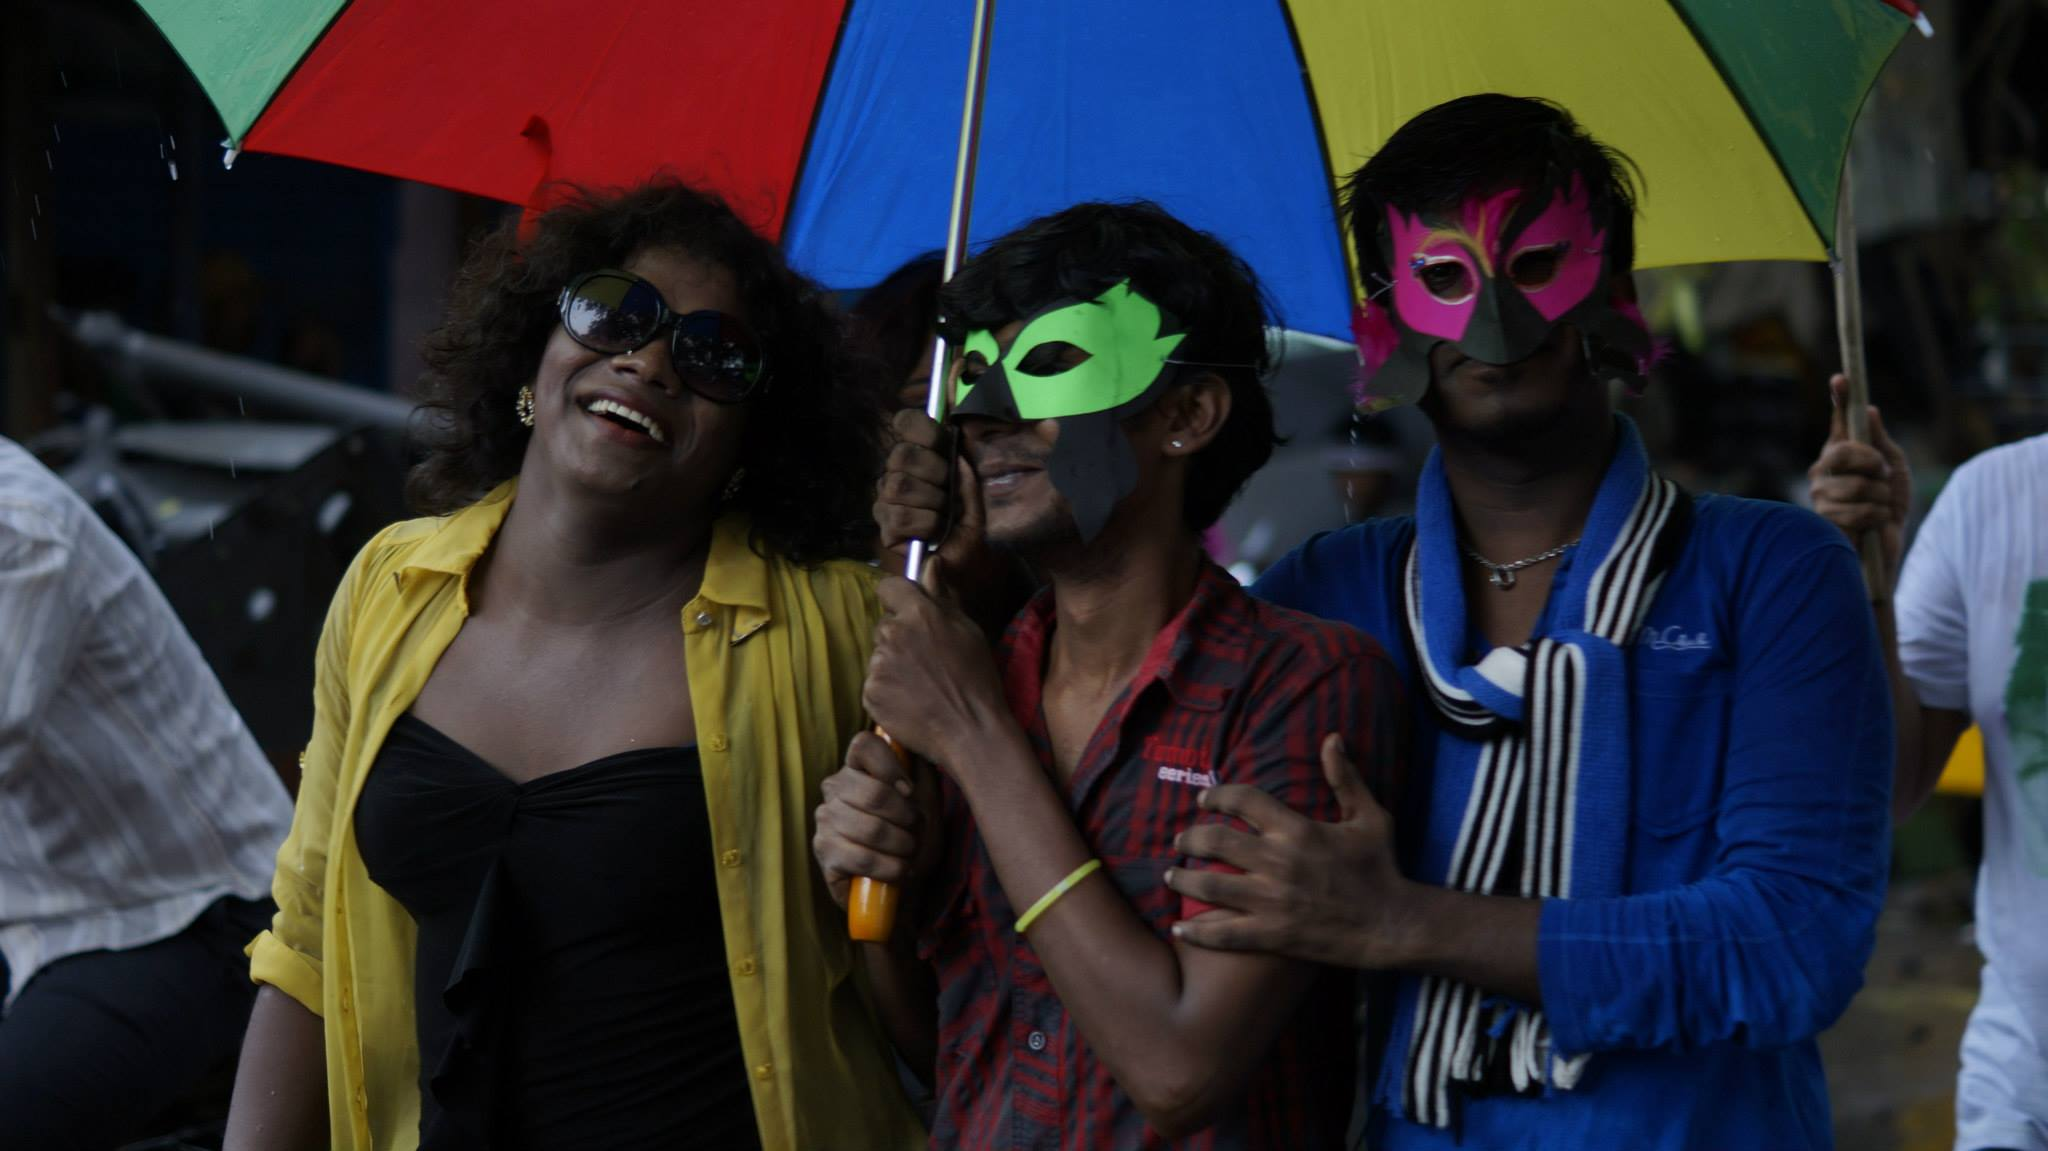 Participants in Chennai Pride 2014